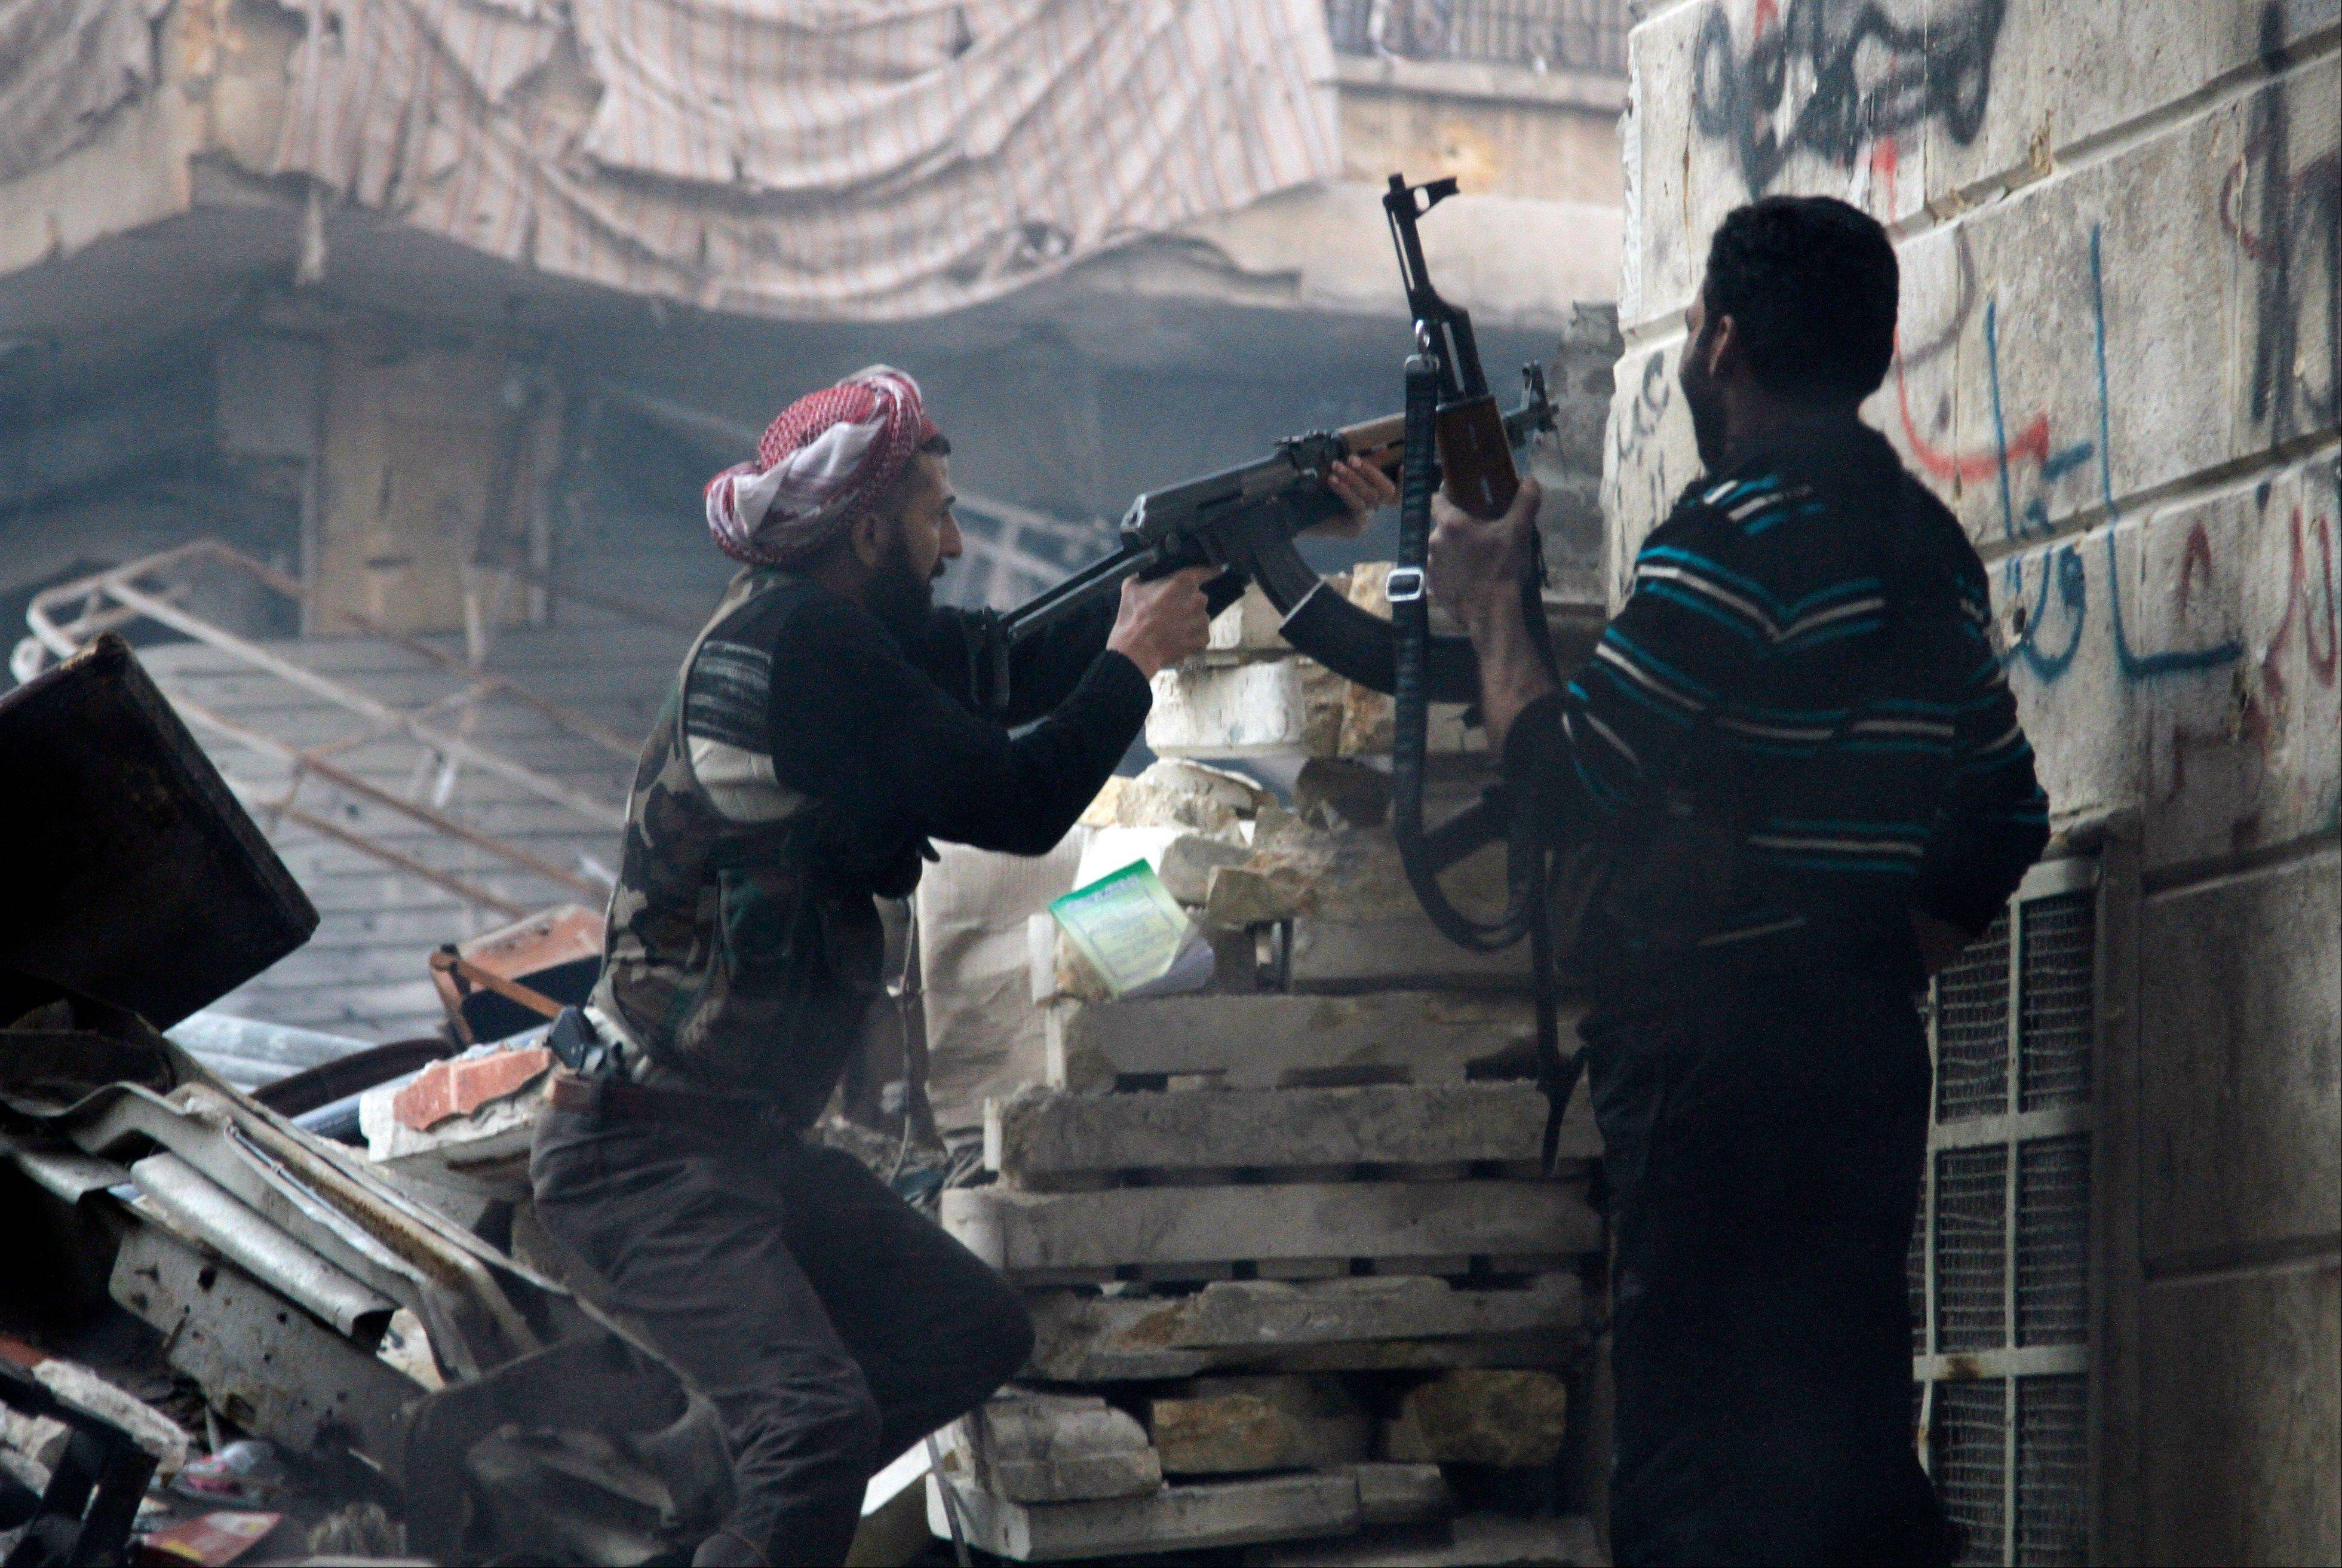 Free Syrian Army fighters fire at enemy positions during heavy clashes with government forces in the Salaheddine district in Aleppo, Syria. Activists say Syrian rebels have captured an oil pumping station in the north central province of Raqqa after days of fighting.